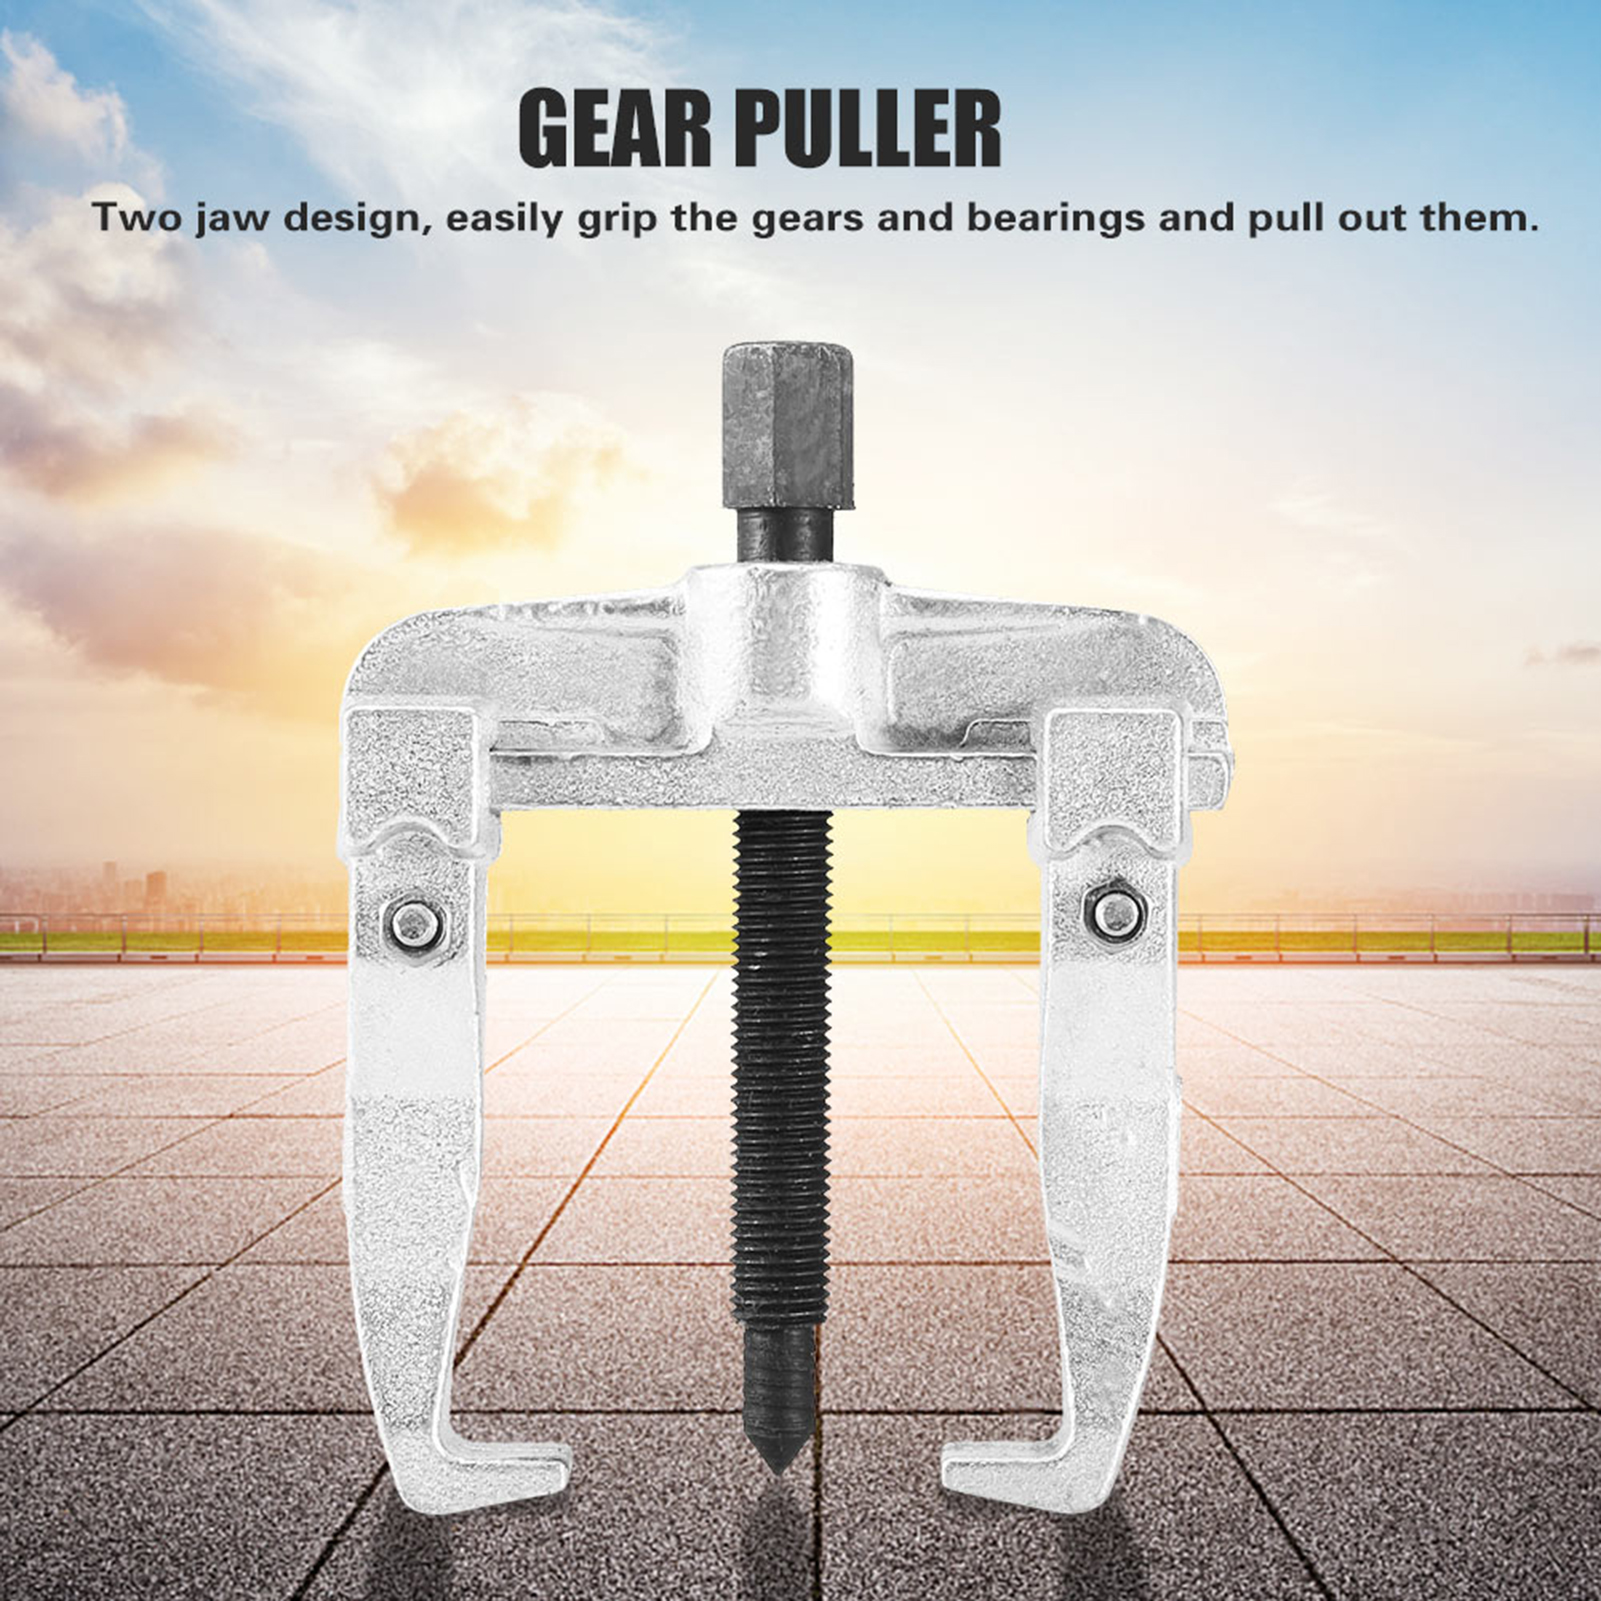 US-2-Jaw-Bearing-Puller-Sliding-Arm-Gear-Bearing-Puller-Extractor-Remover-Tool thumbnail 14